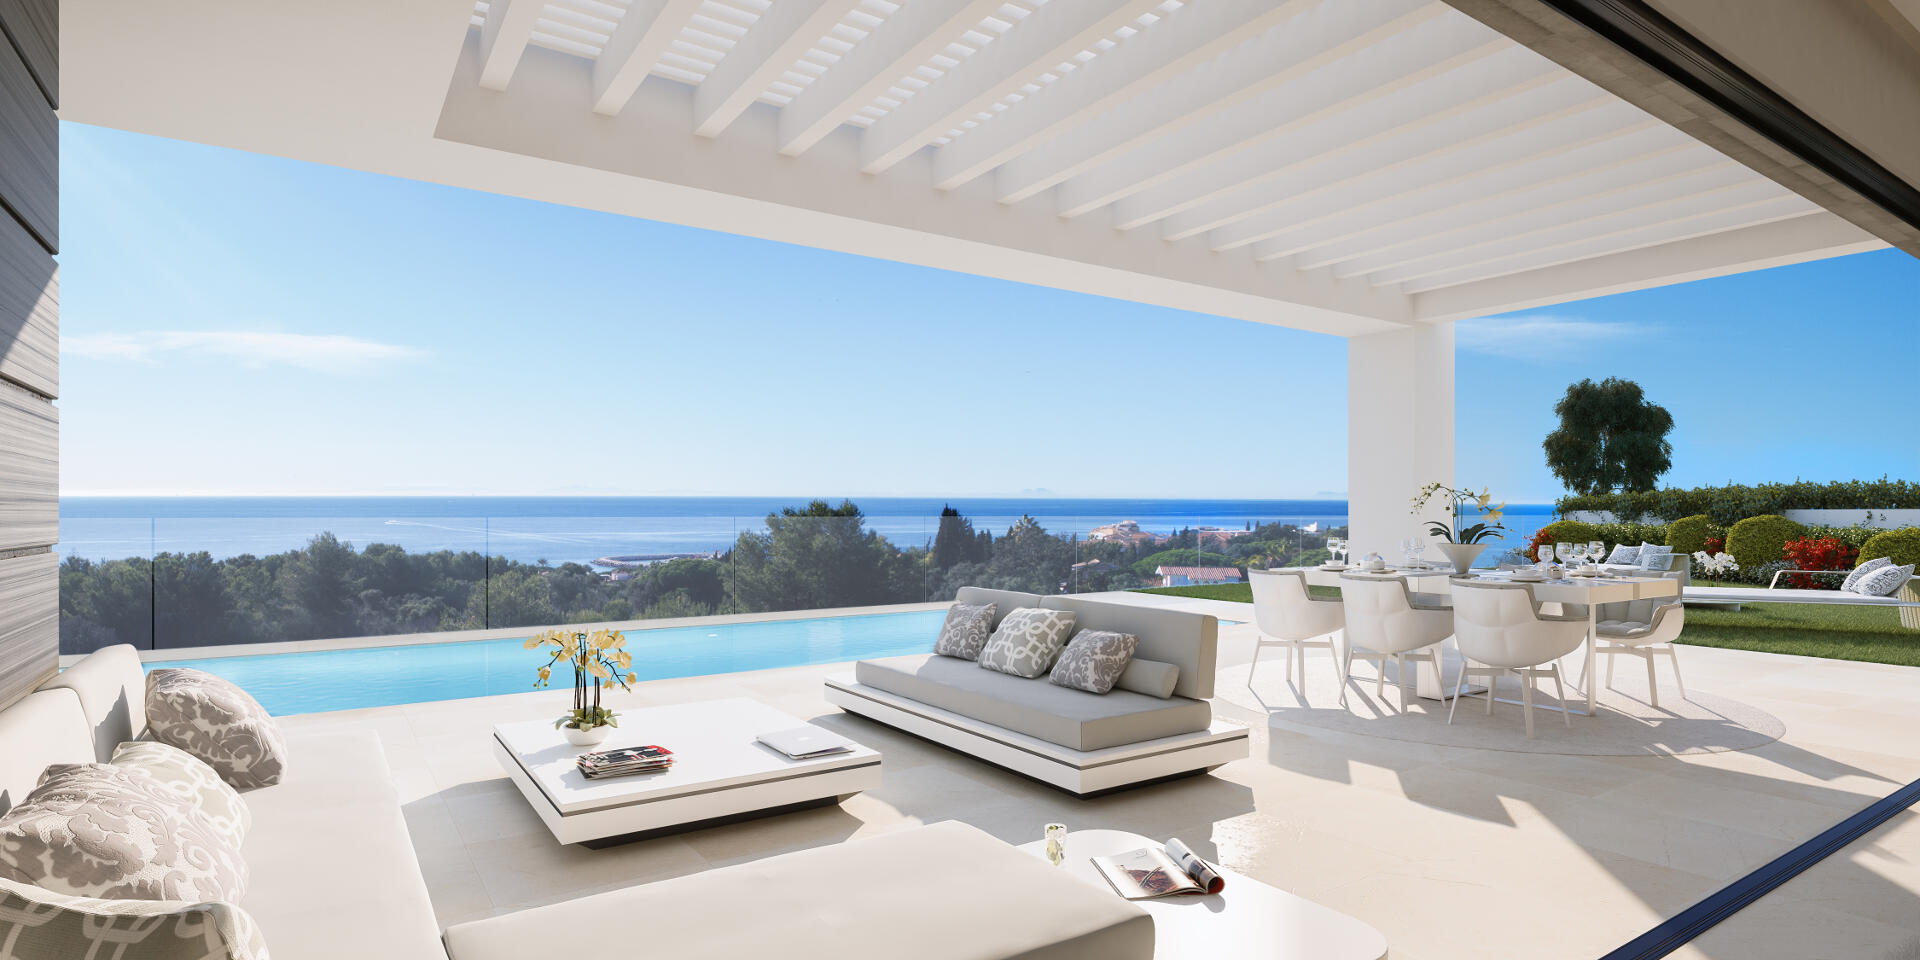 Caboroyale new modern villa with sea views for sale East Marbella